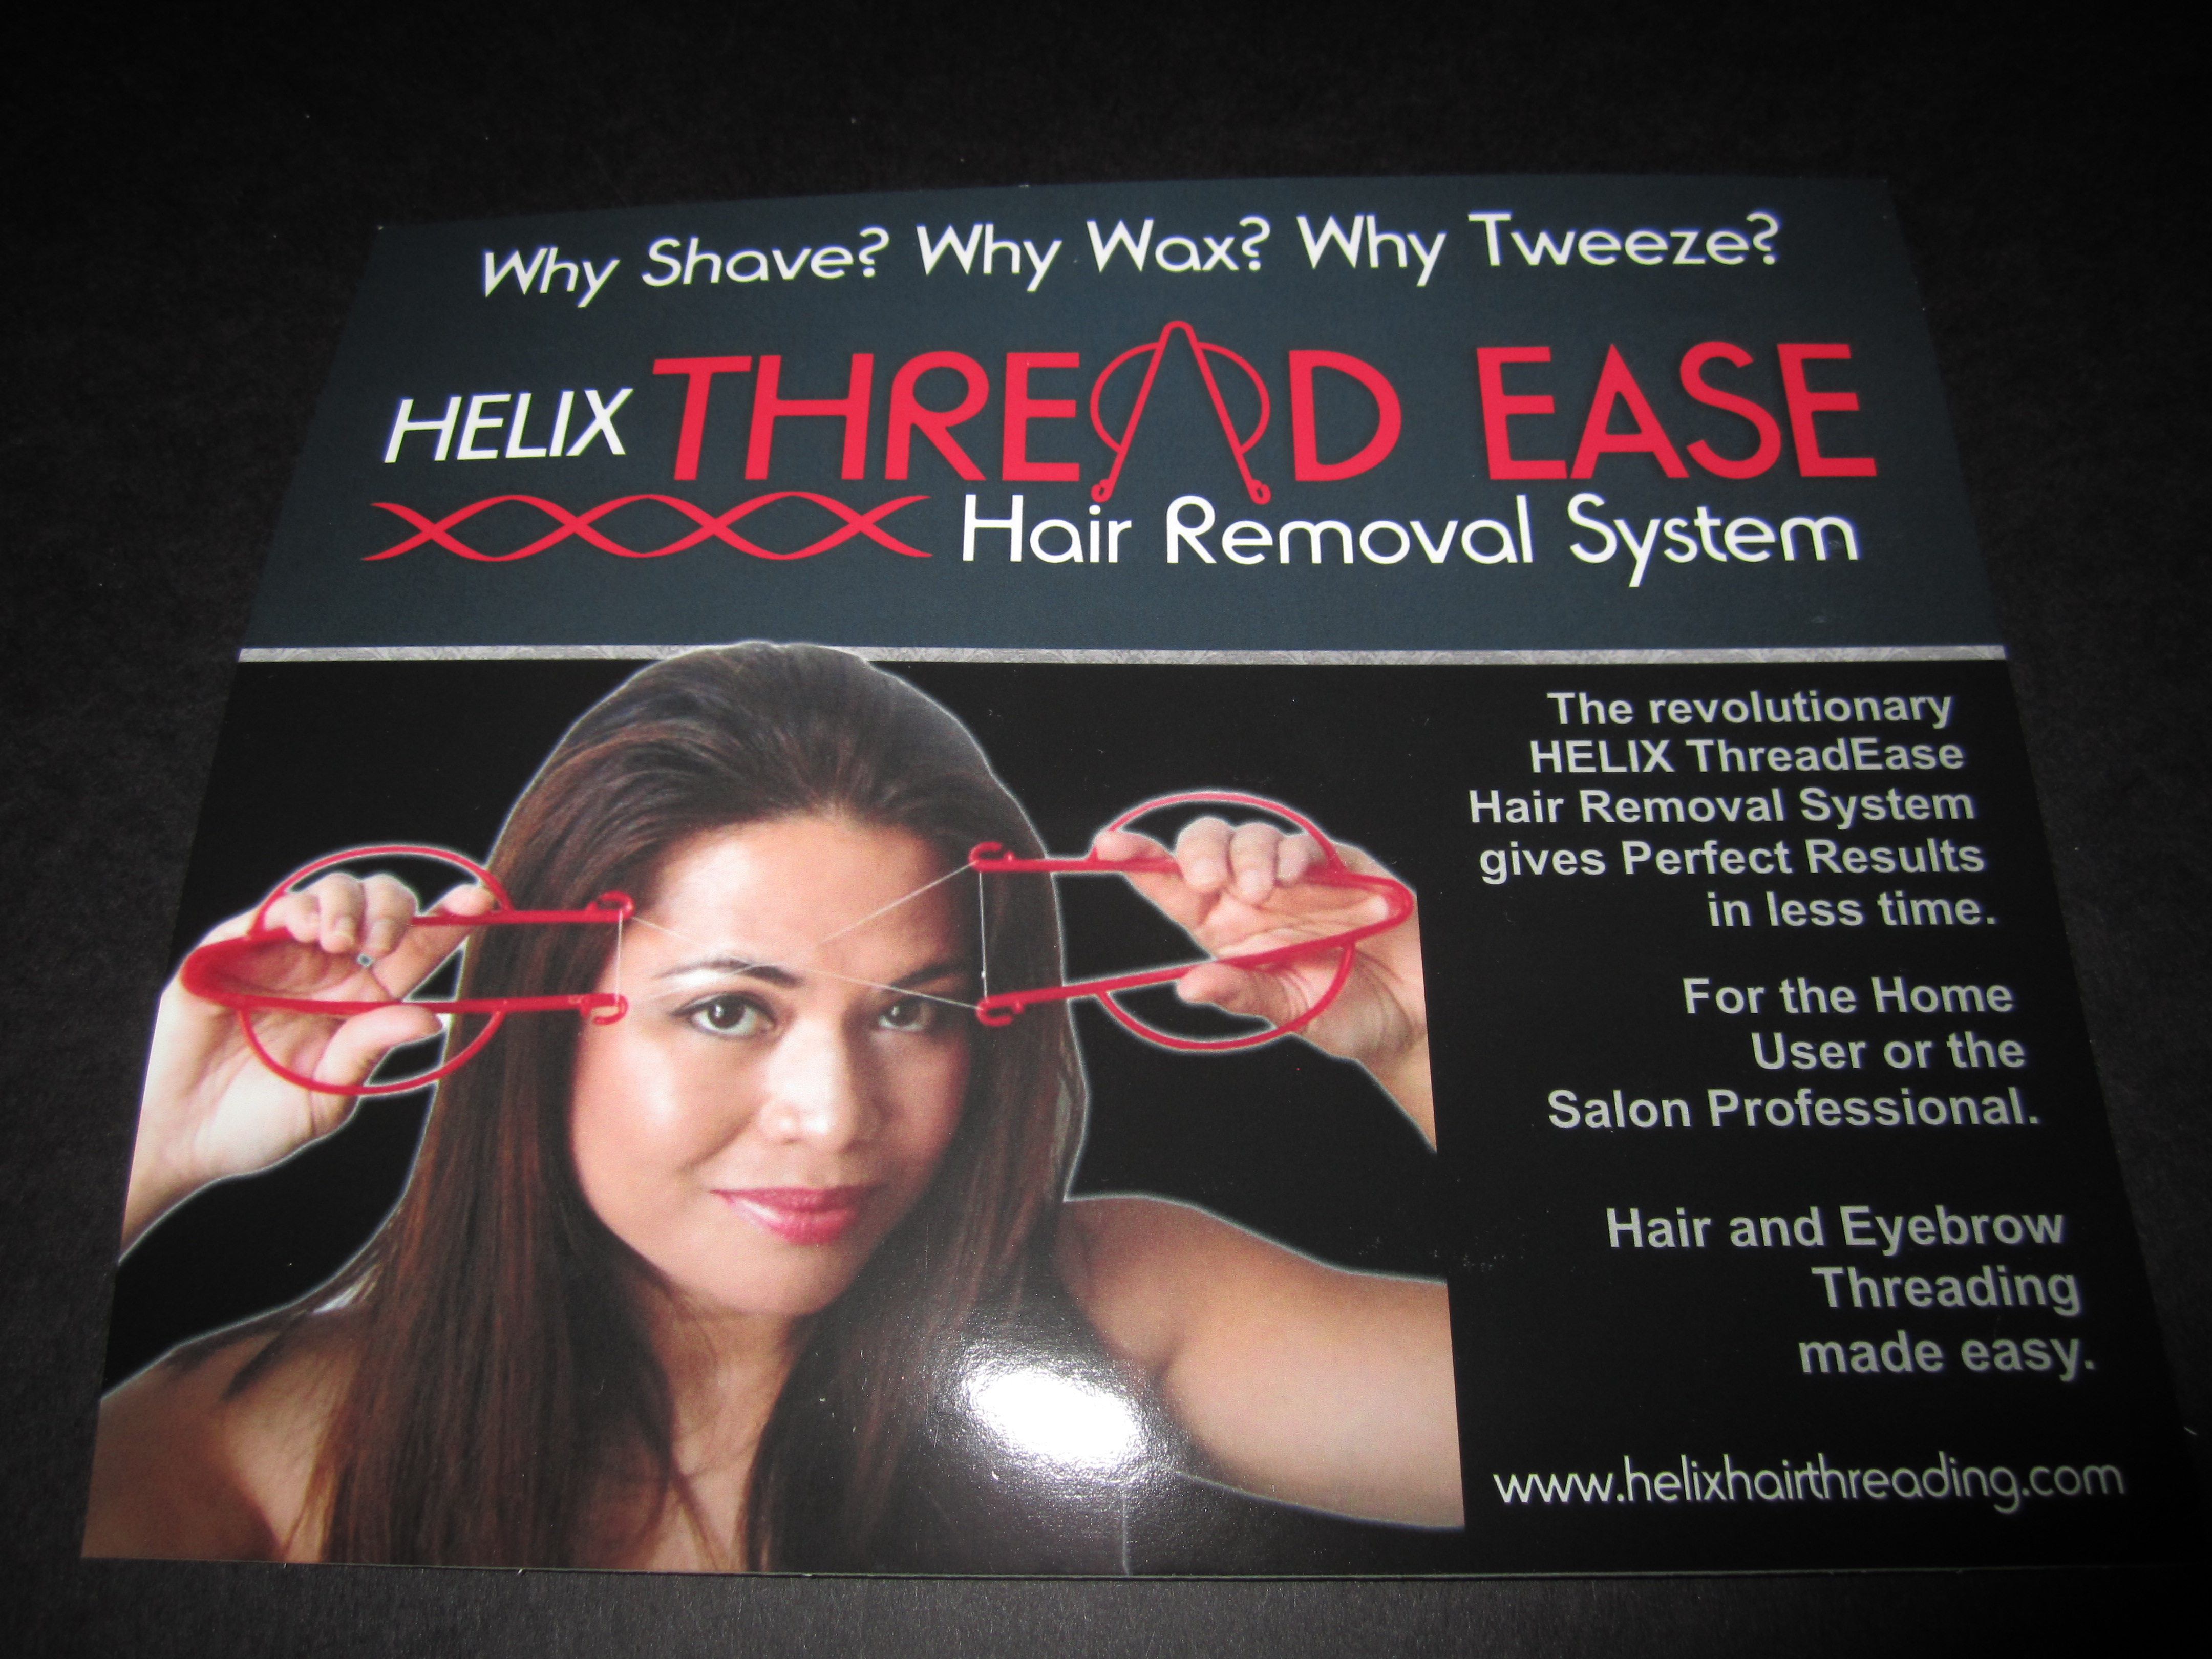 Helix-Thread-Ease